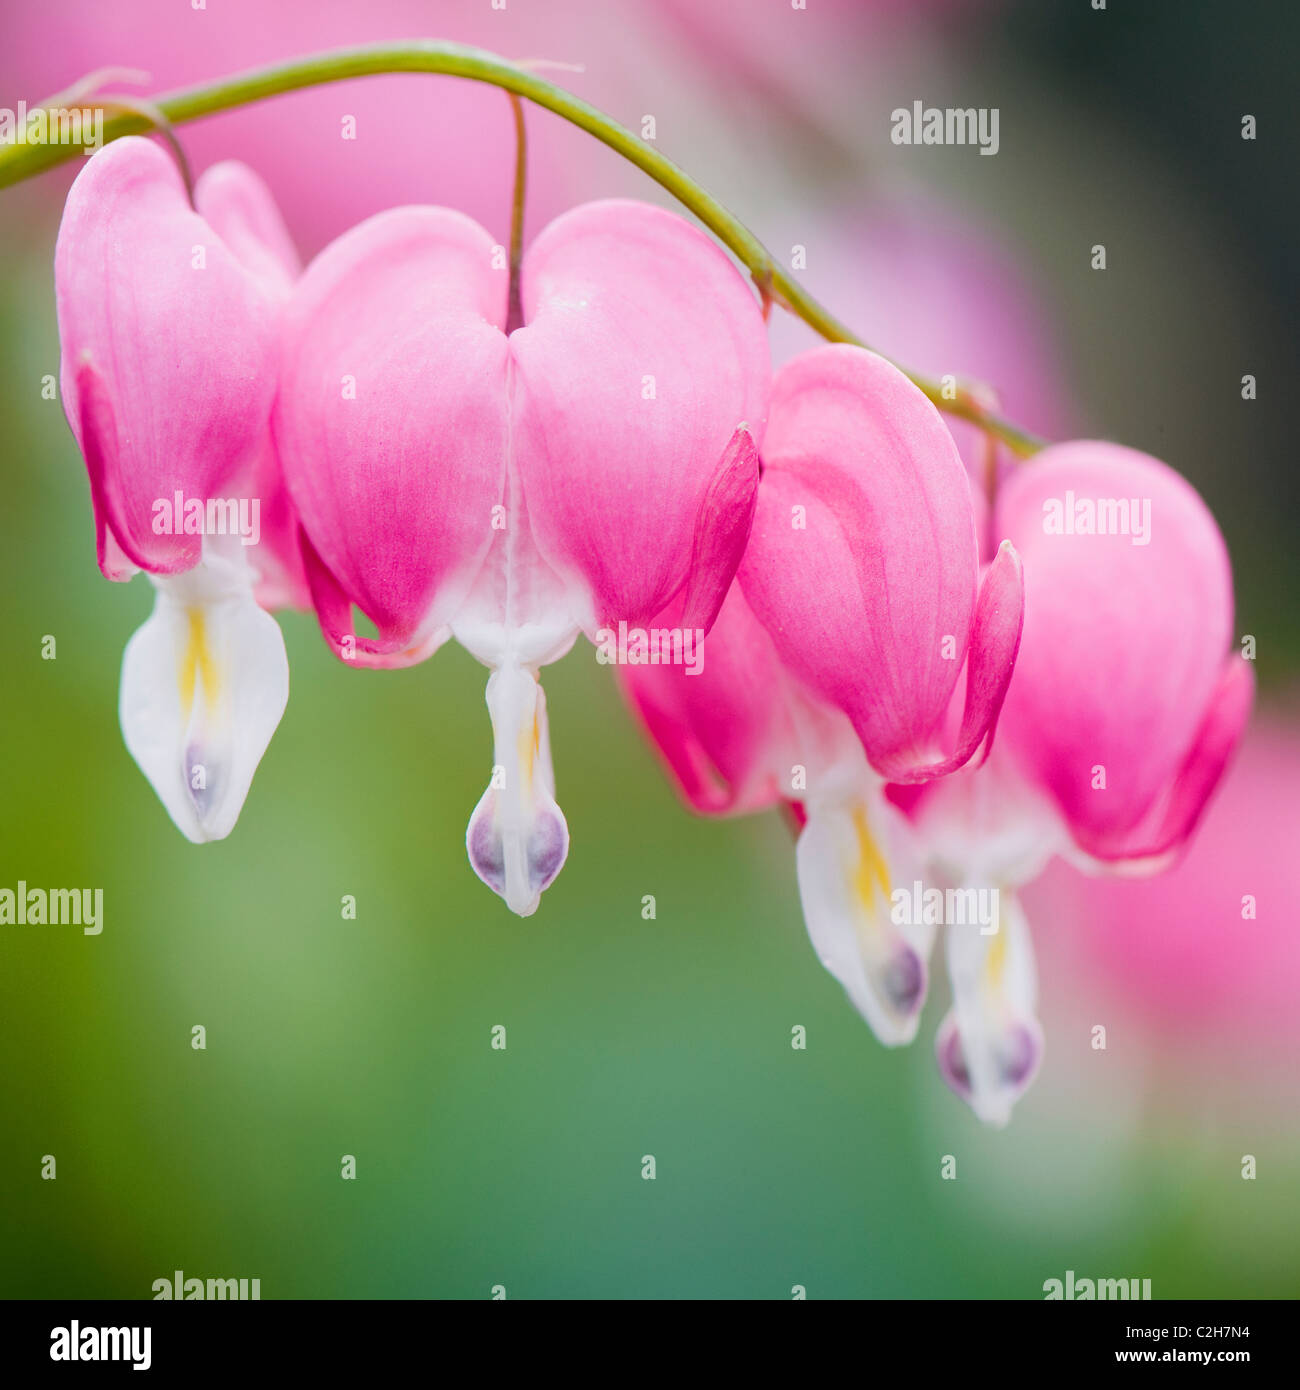 Pink Heart Shaped Flowers Stock Photos Pink Heart Shaped Flowers